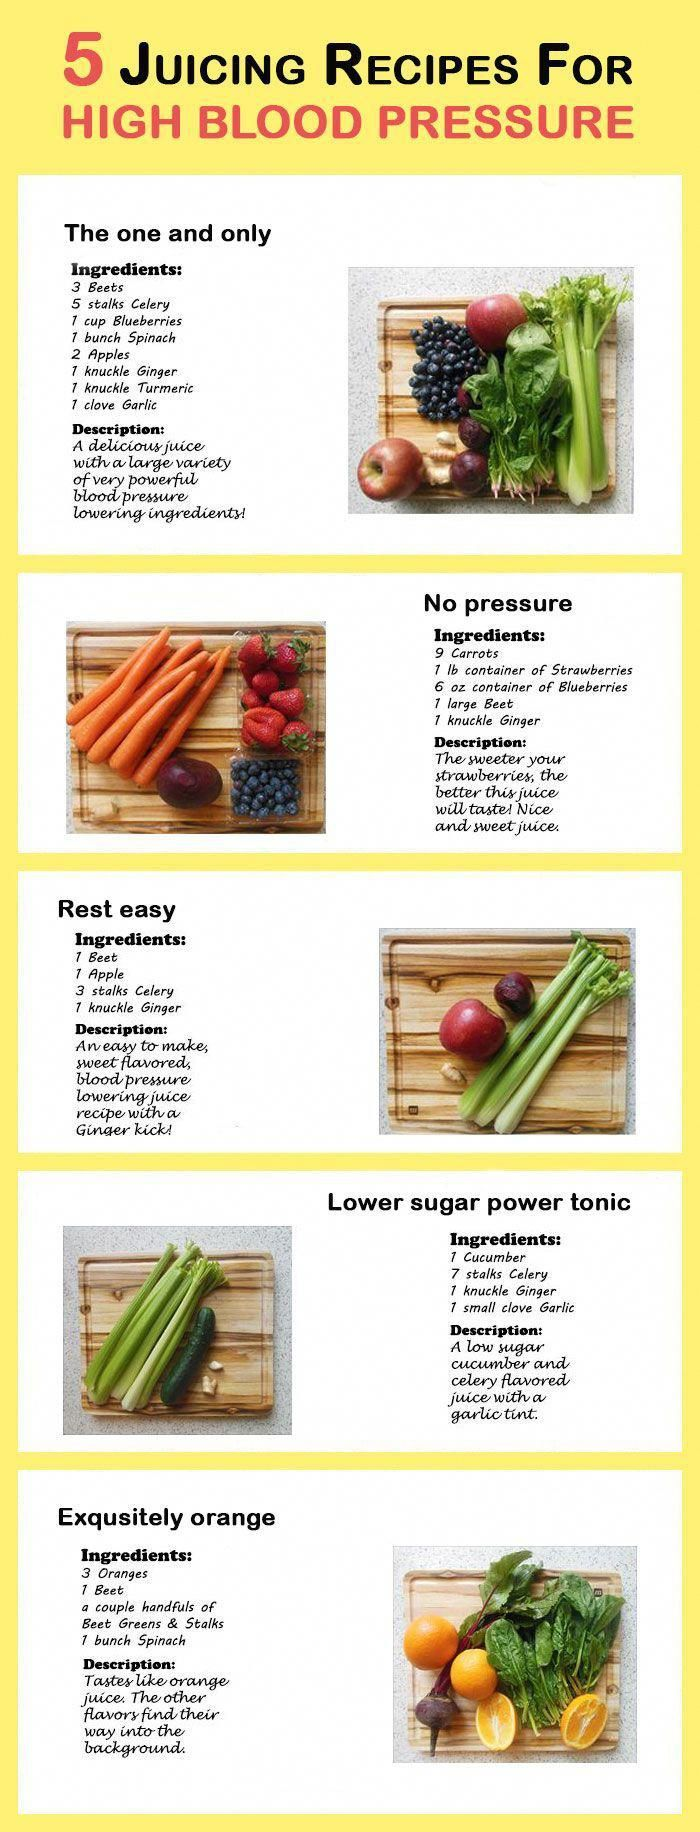 How To Get Rid Of High Blood Pressure Permanently